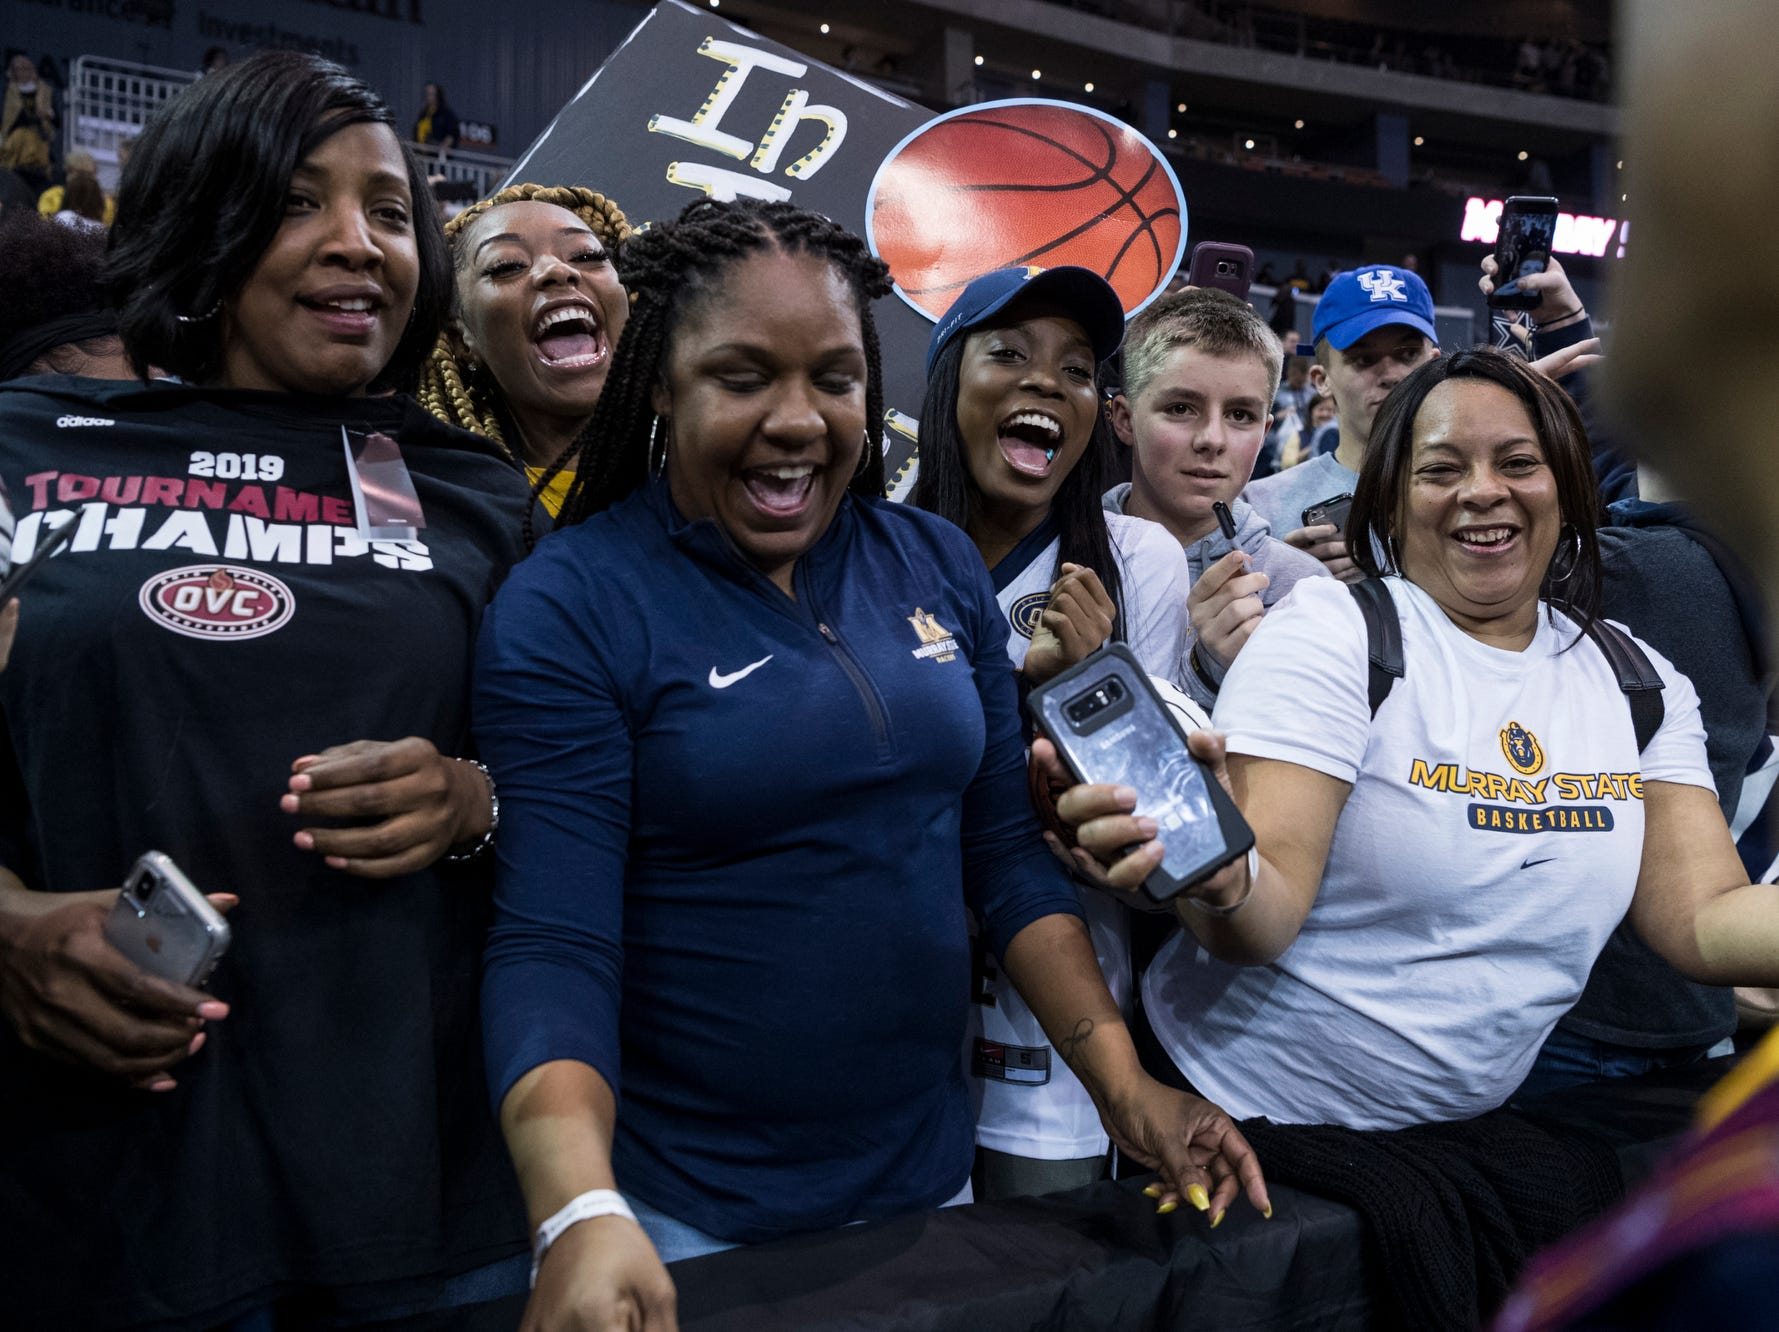 Family and friends of Murray State's Ja Morant (12) celebrate the Racers' Ohio Valley Conference championship win against the Belmont University Bruins at Ford Center in Evansville, Ind., Saturday, March 9, 2019. The Racers defeated the Bruins, 77-65.